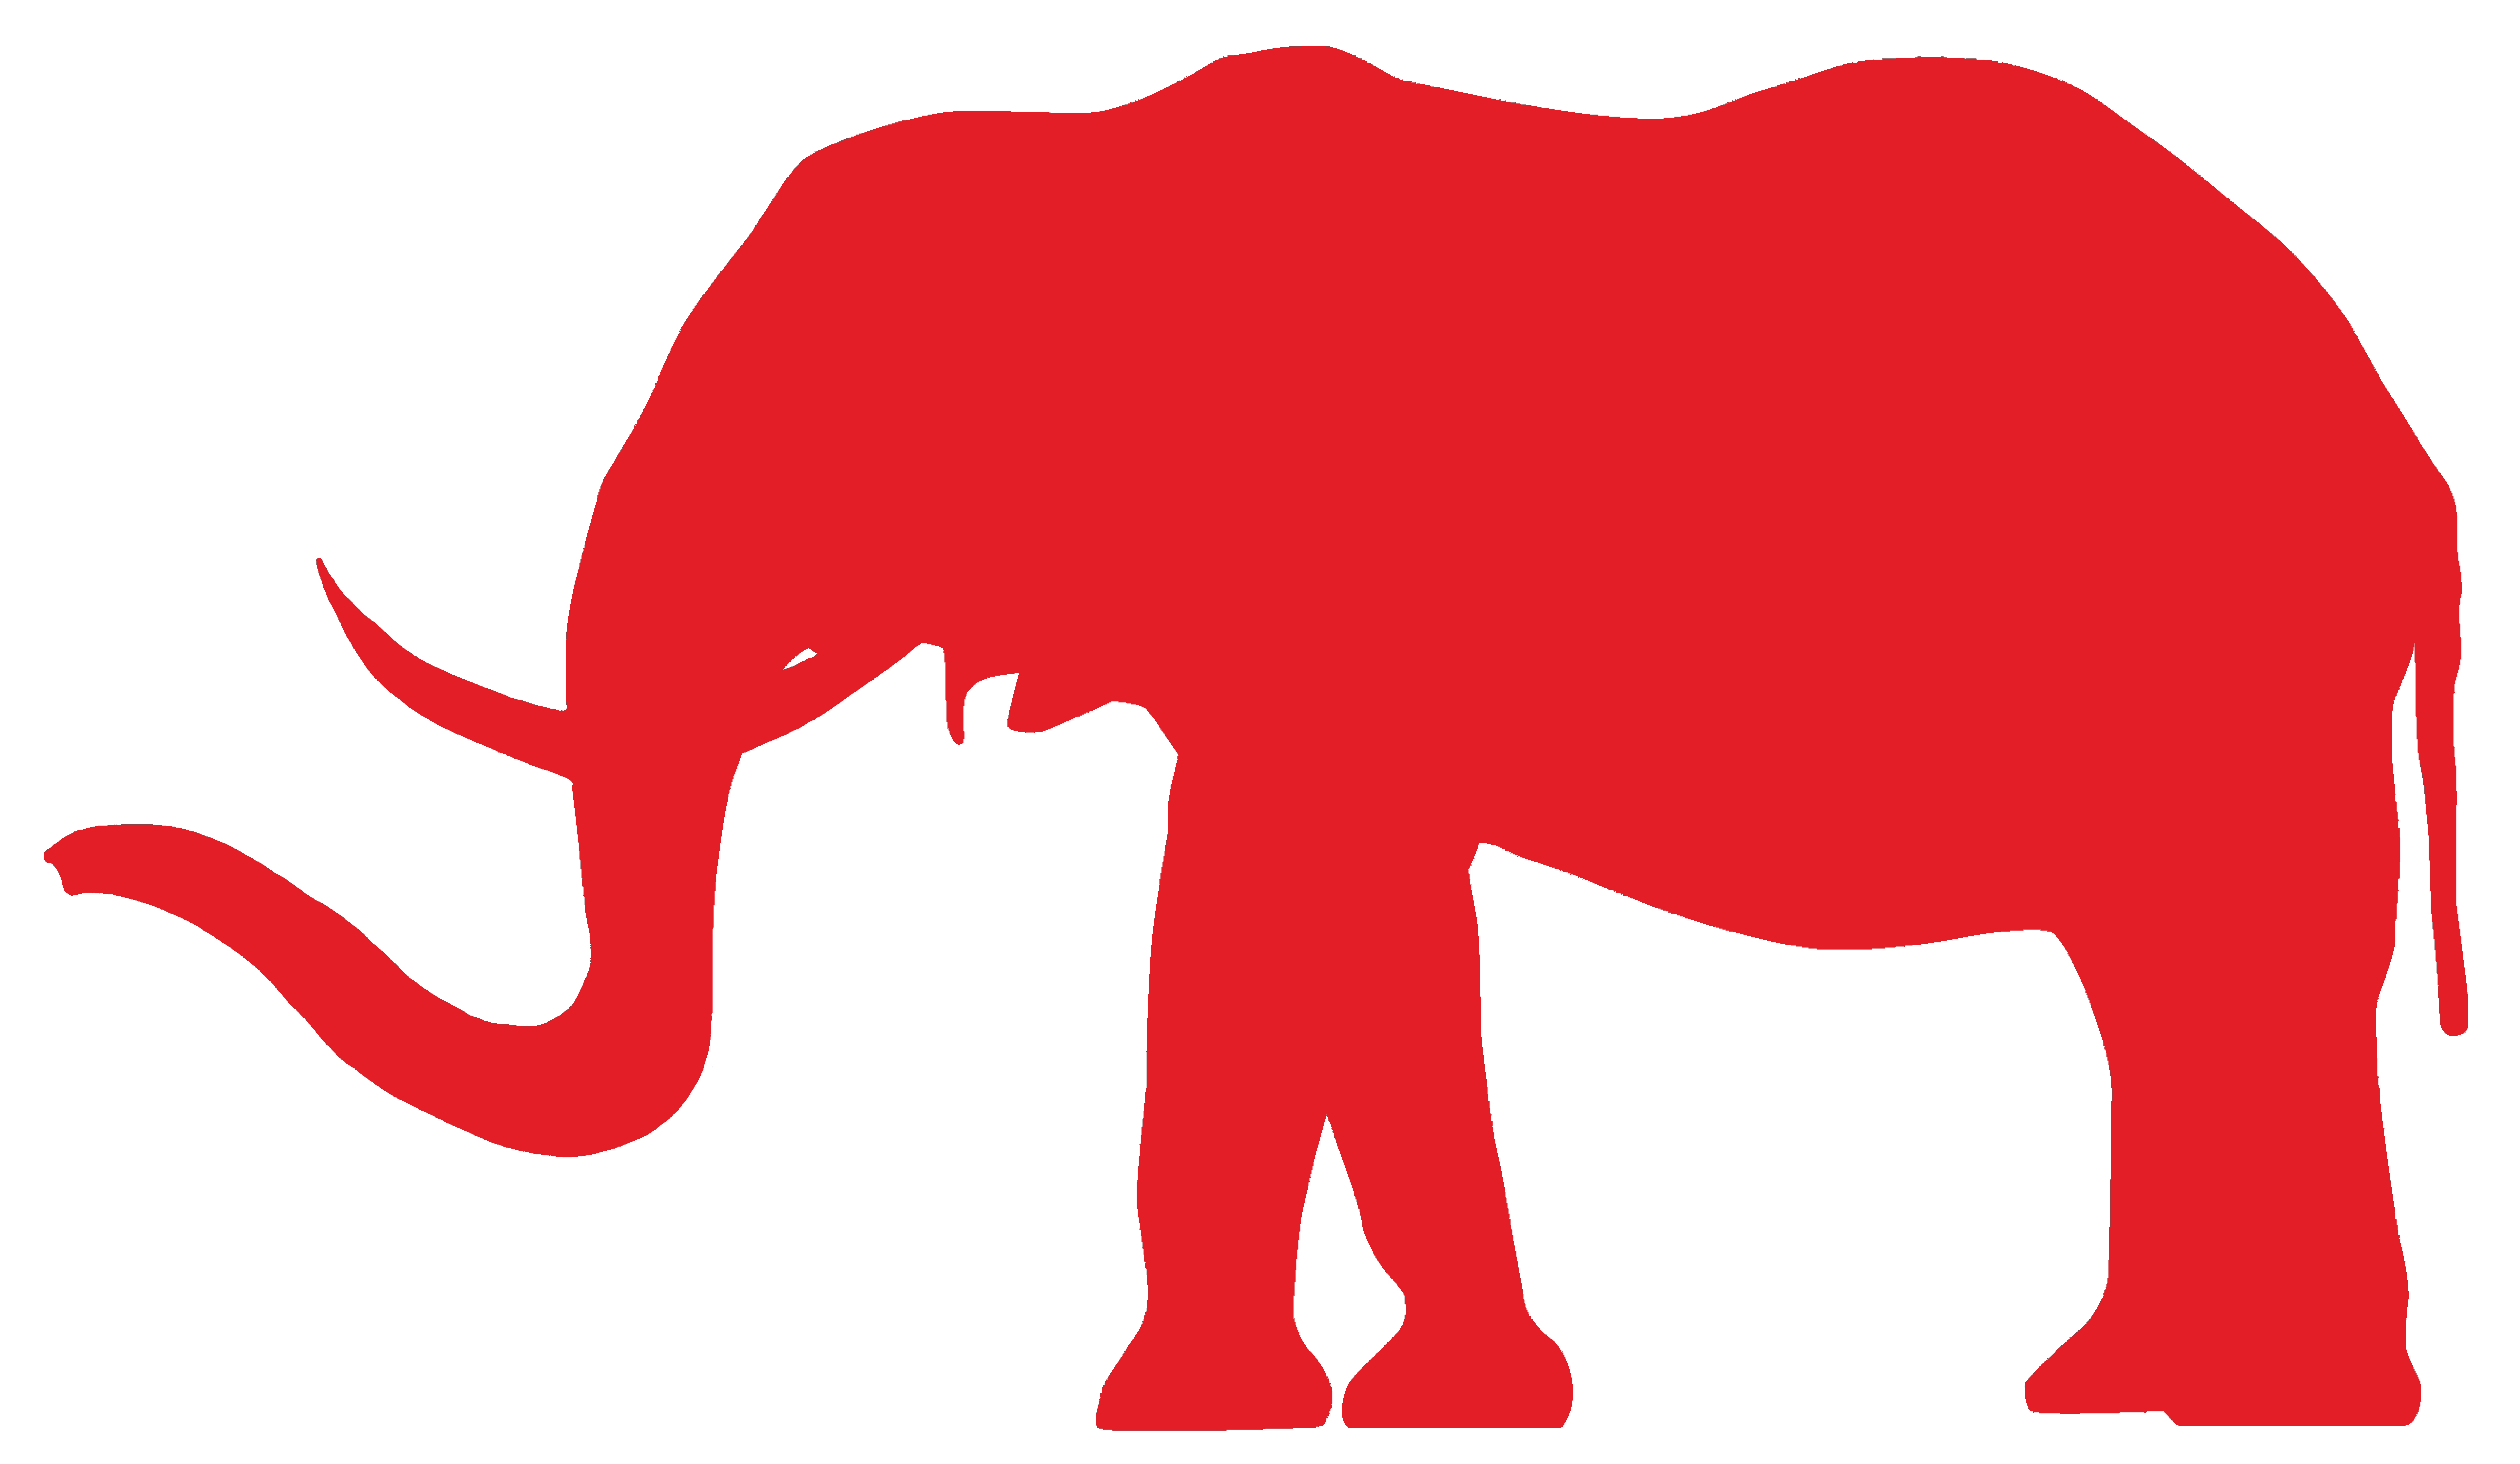 File Conservative Elephant Png Wikimedia Commons Over 411 elephant png images are found on vippng. wikimedia commons